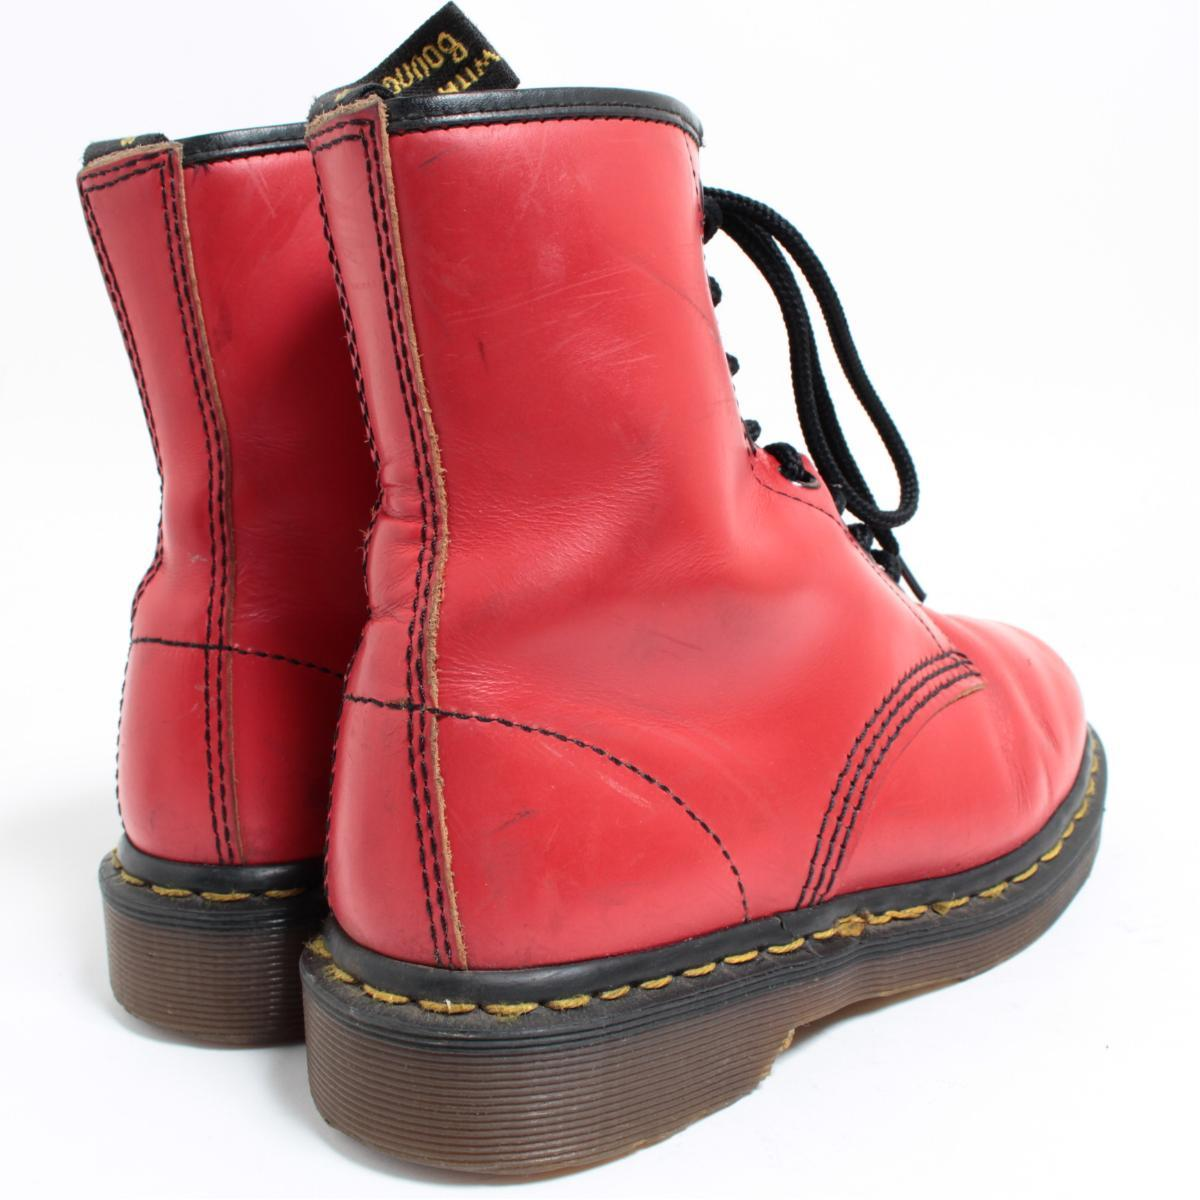 UK4 Lady's 22.5cm /bol6819 made in the doctor Martin Dr.Martens 8 hall boots U.K.